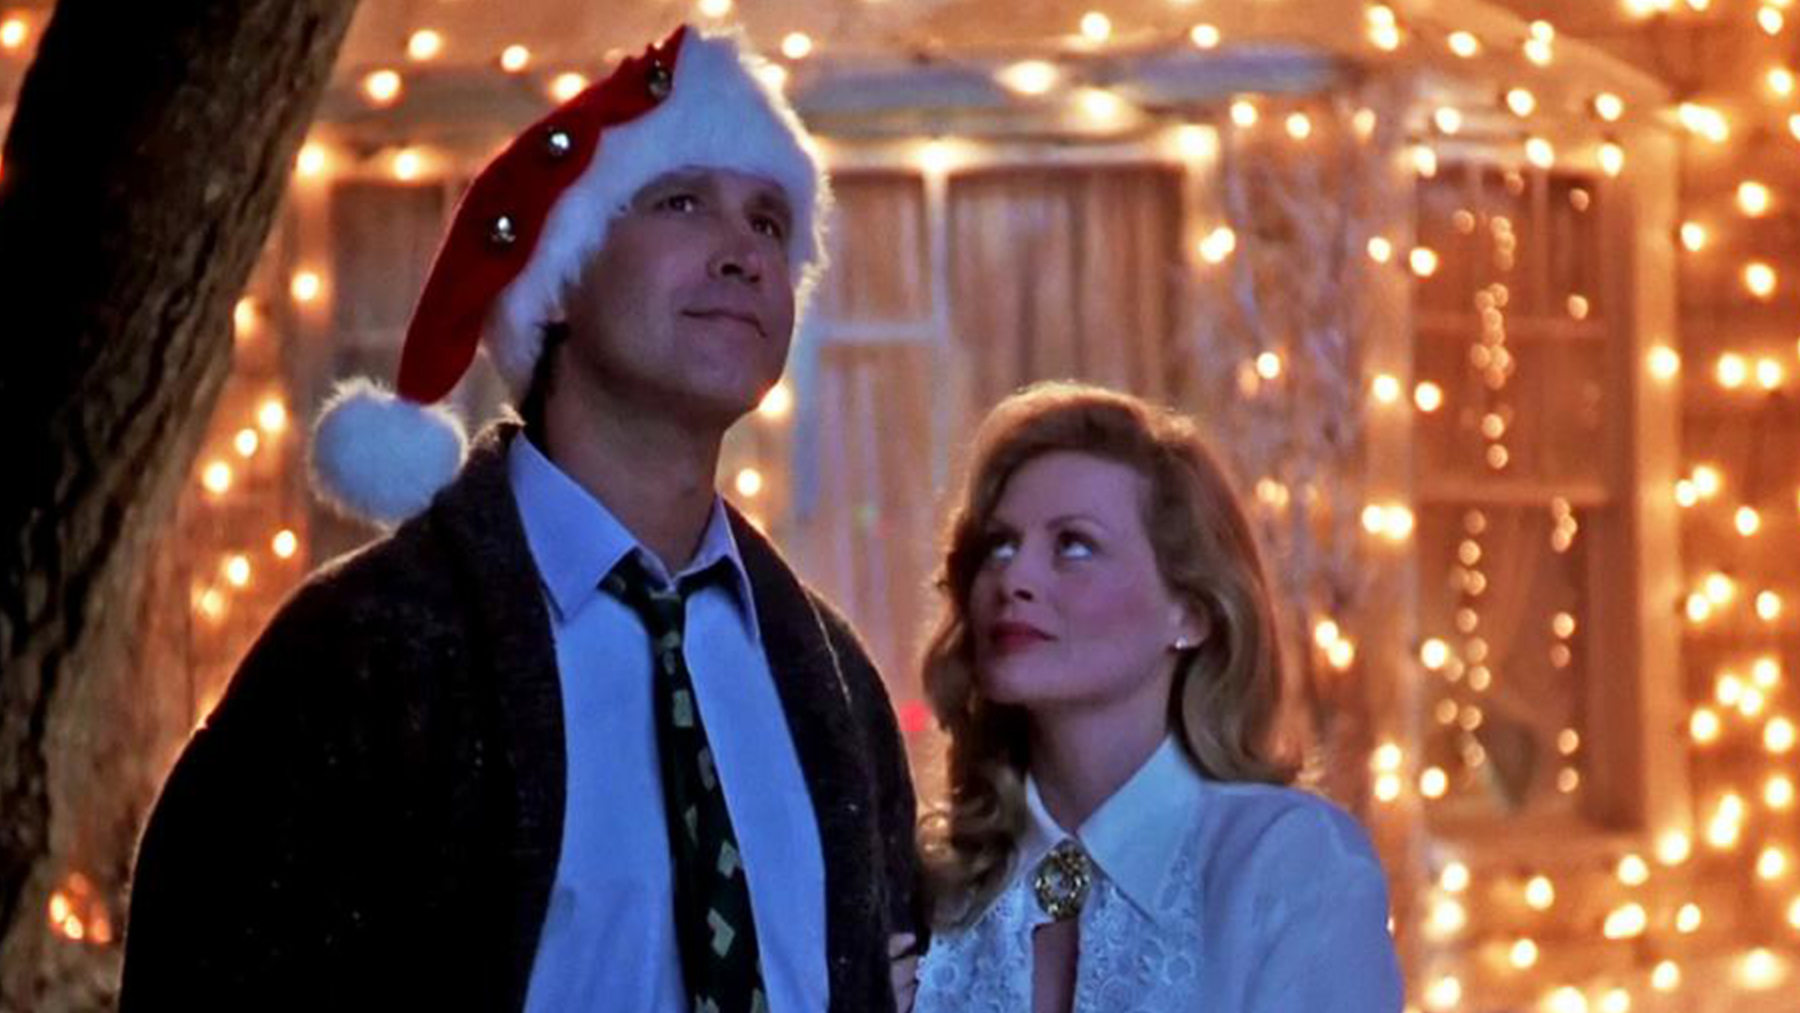 Ellen looking up at Clark as the Griswold house behind them shines brightly from lights for the holidays.